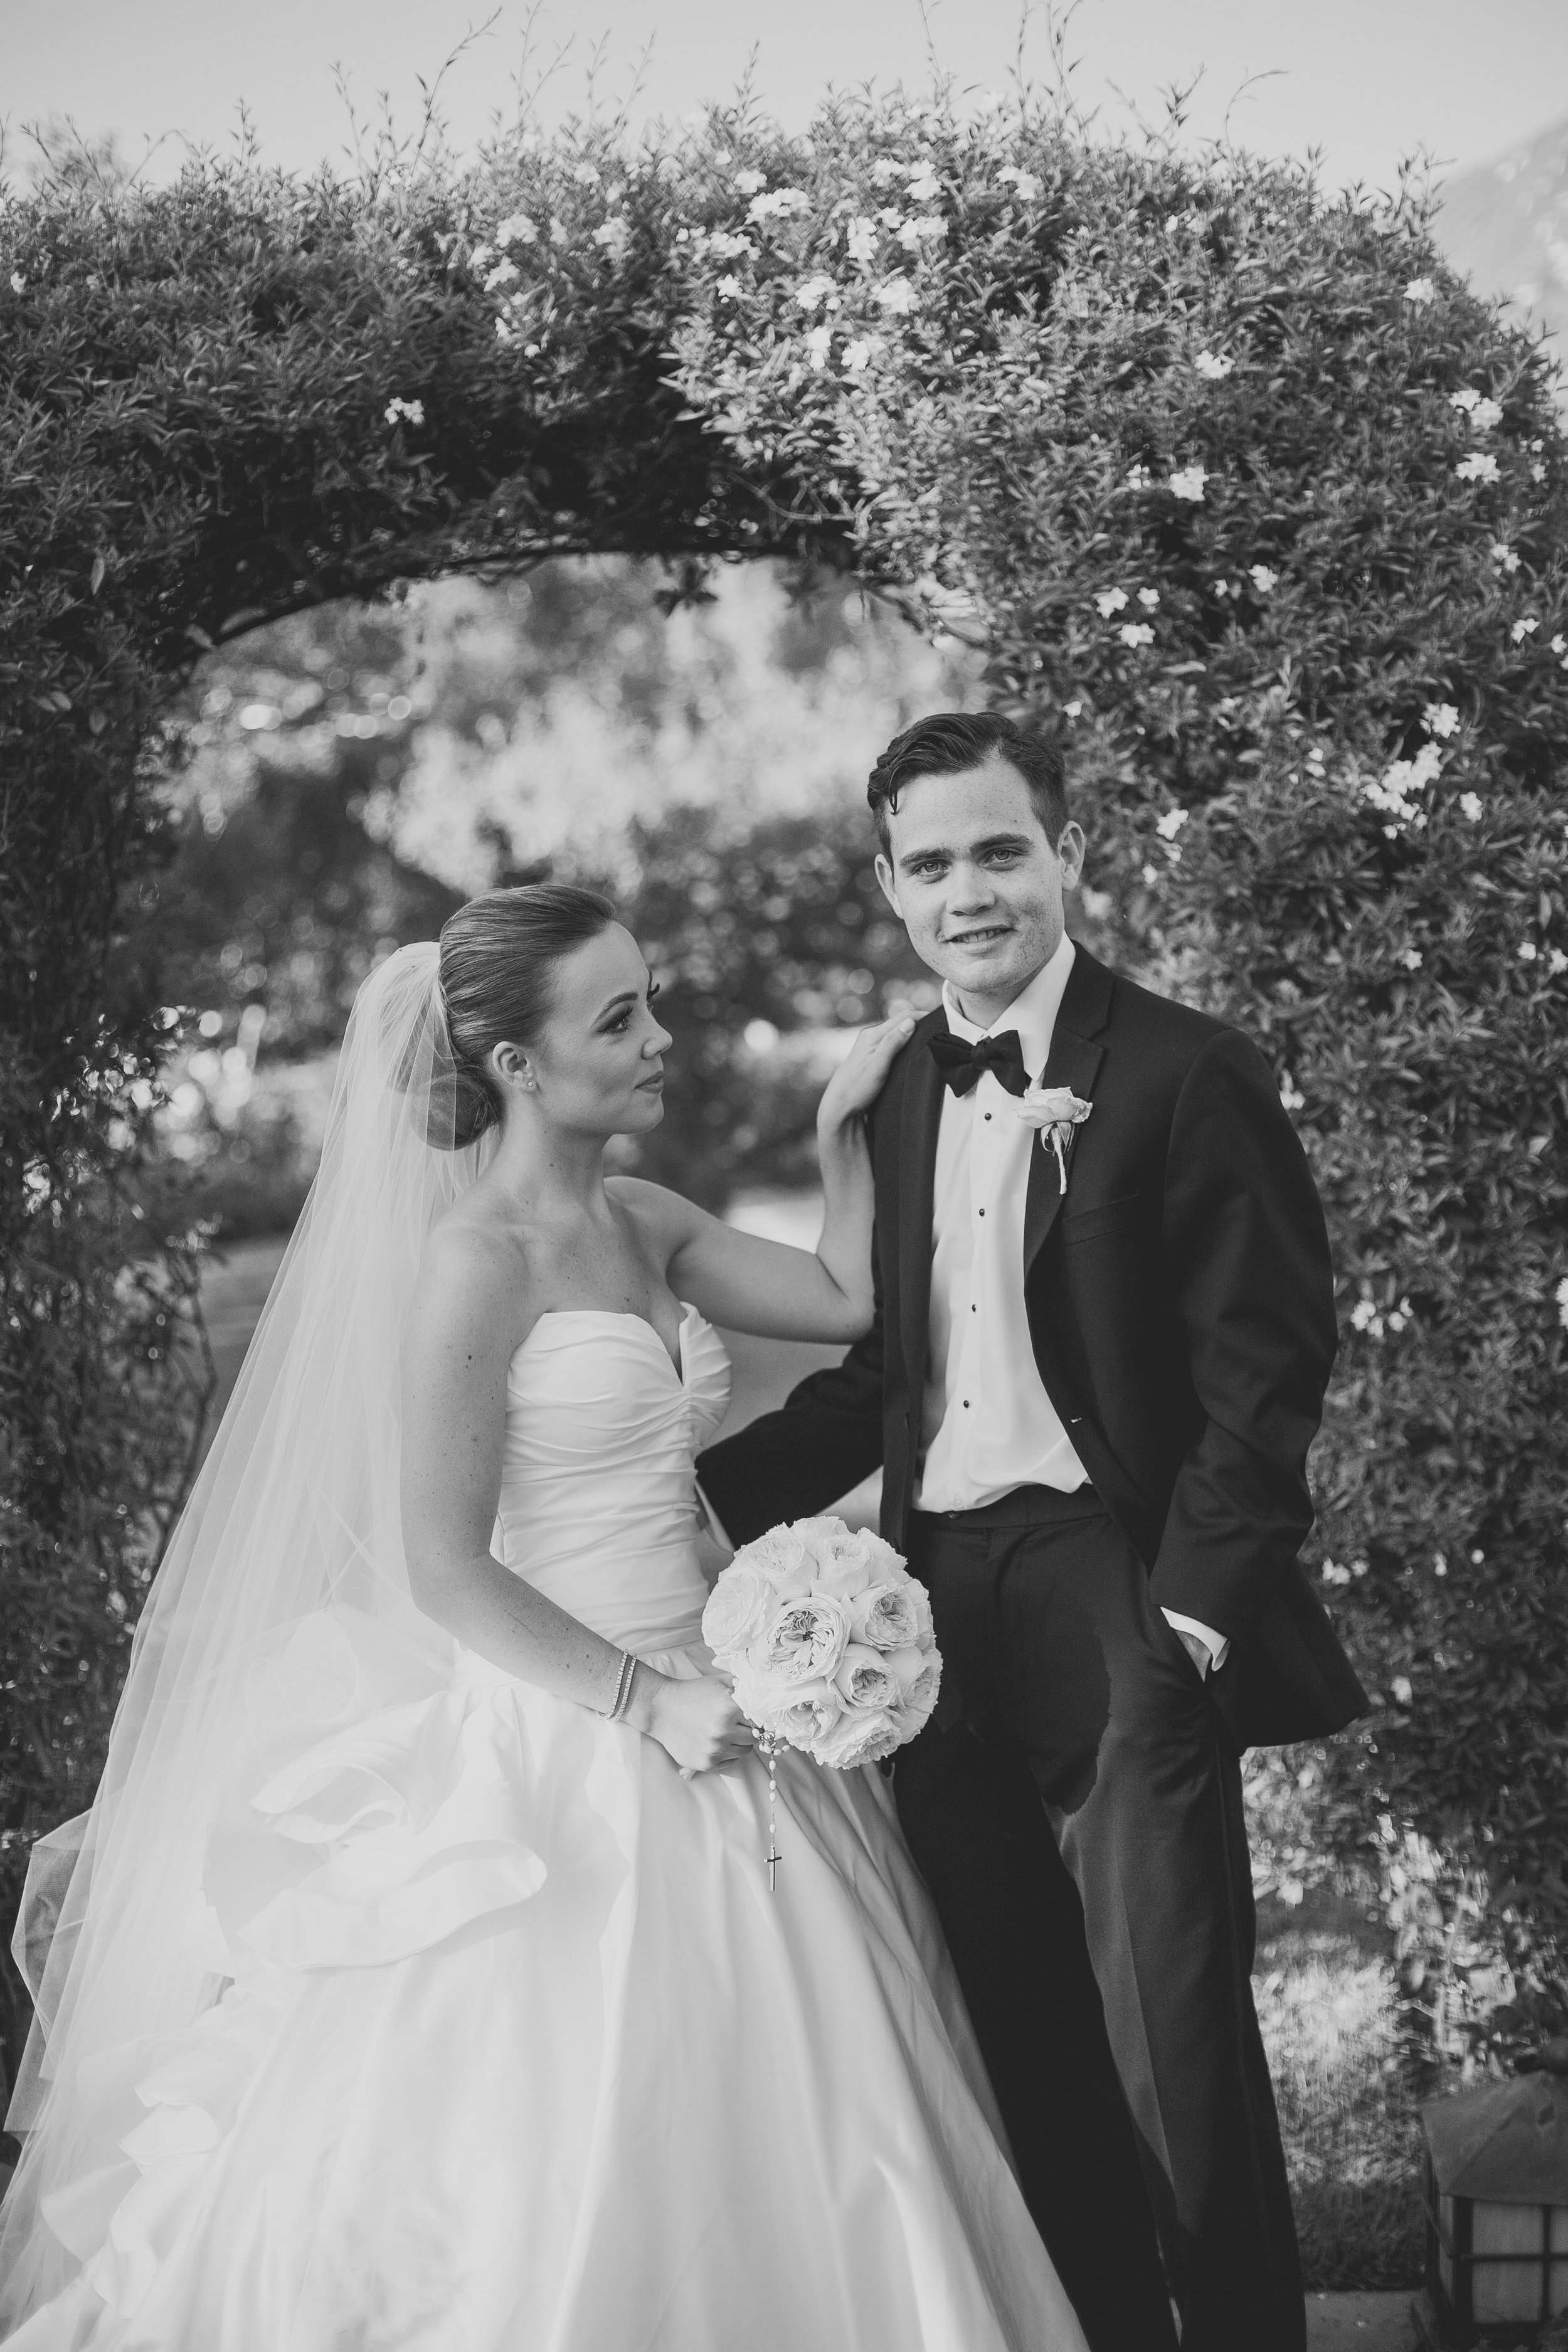 Nathan and i on our wedding day!